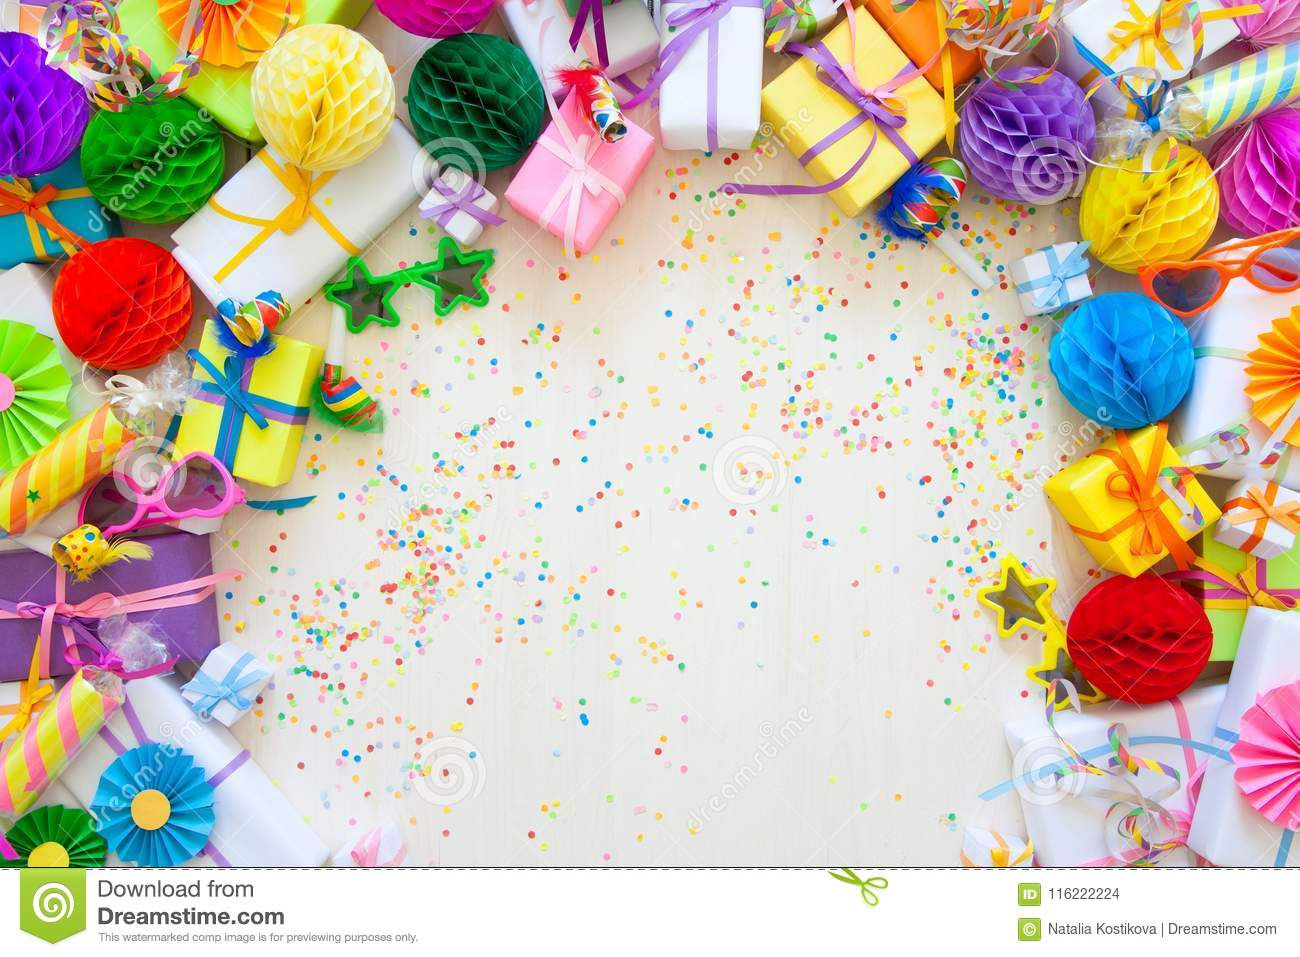 Festive Decor For A Birthday Party Or New Year Bright Decorations Of All Colors The Rainbow